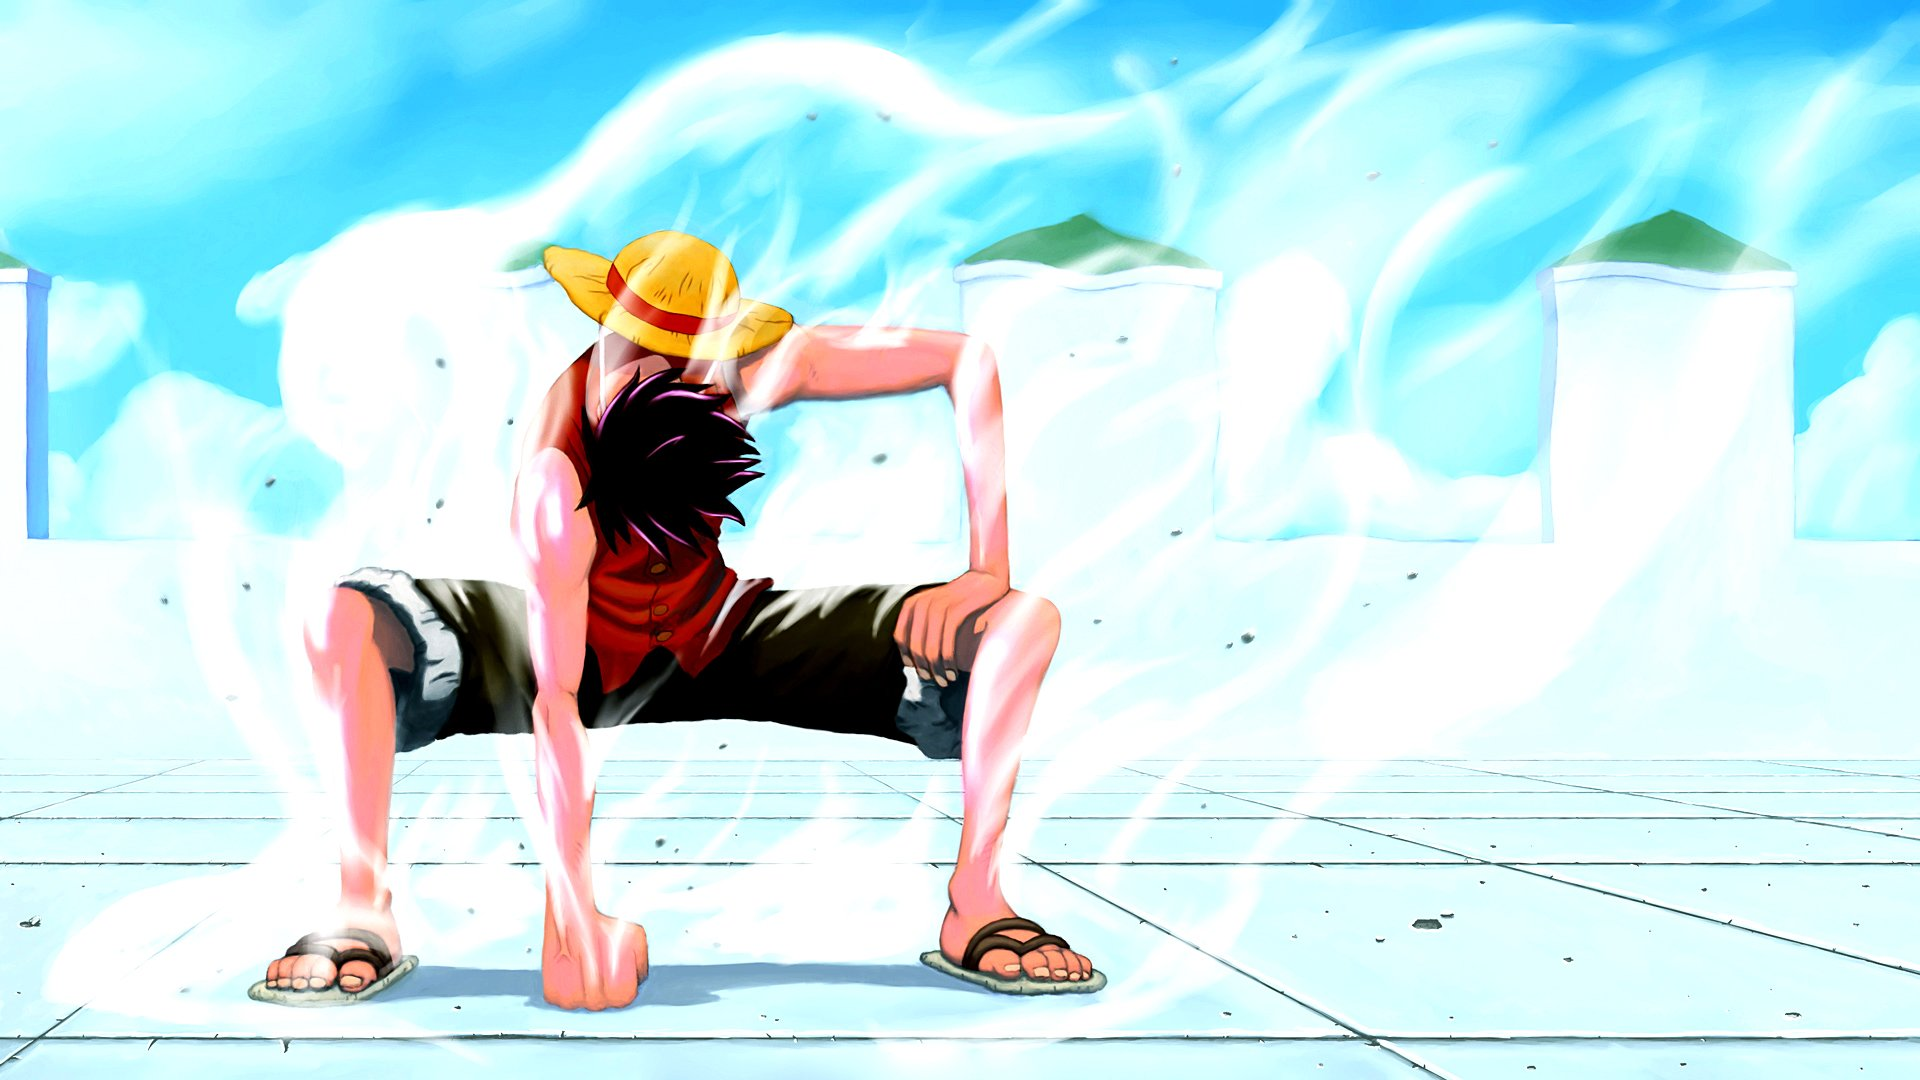 Wallpapers One Piece 1080p 1 1920x1080